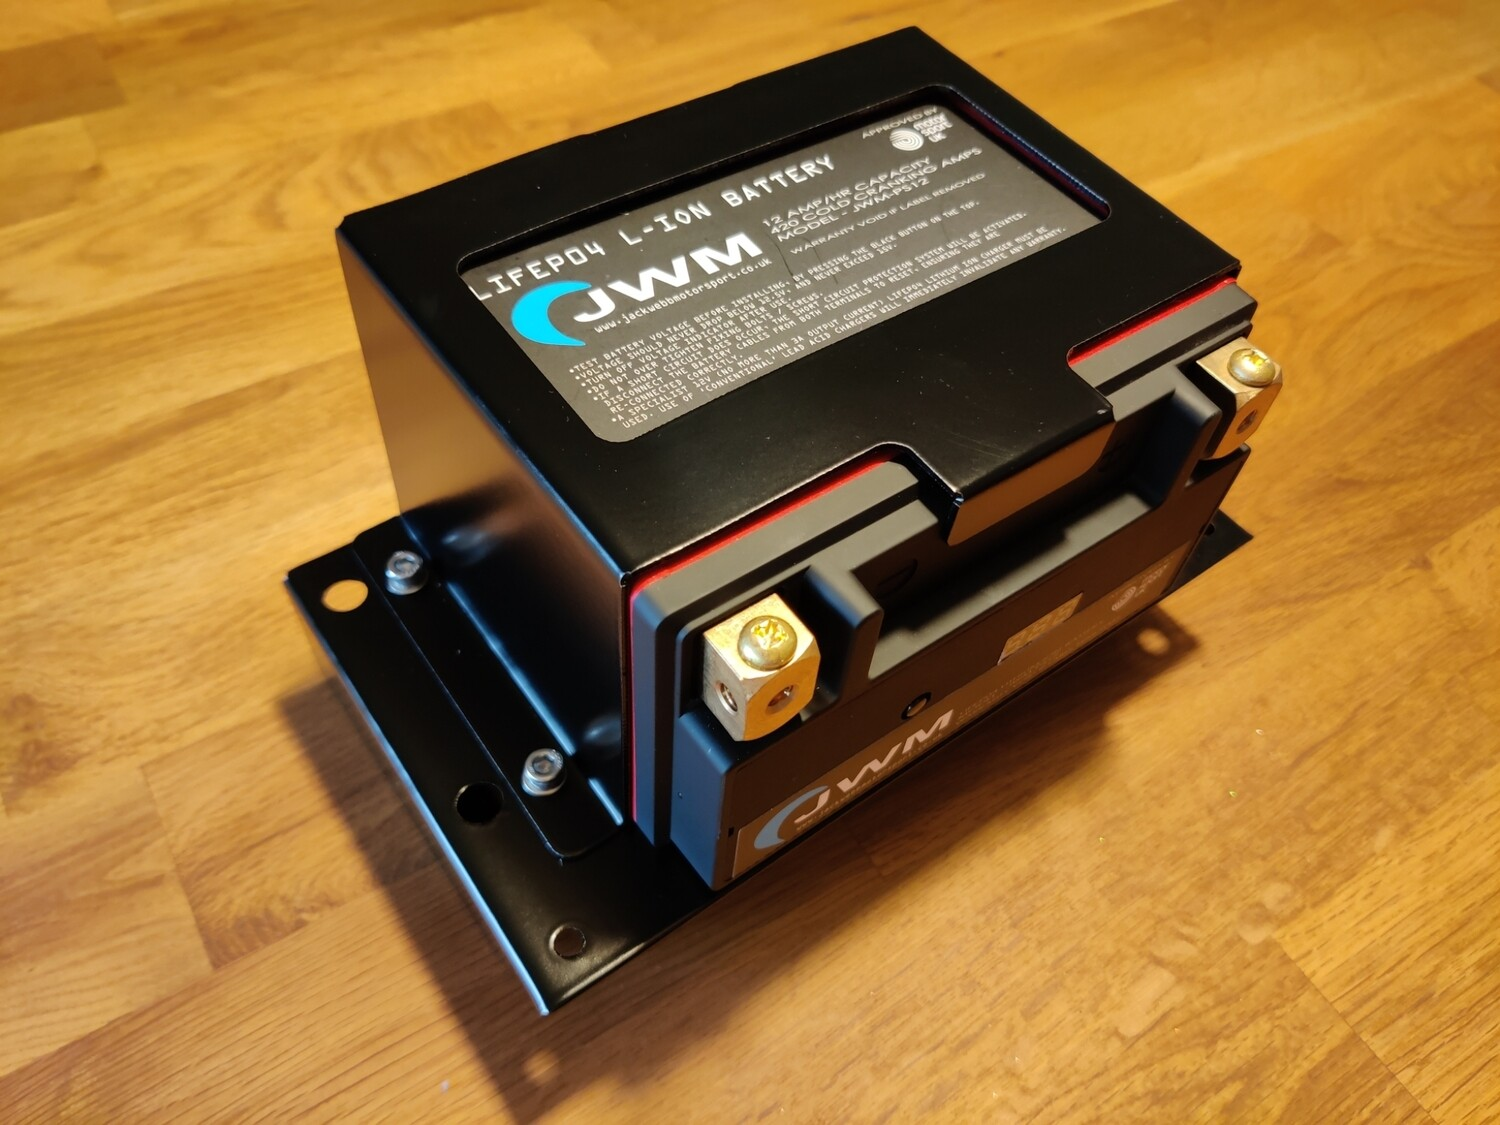 JWM PS-12 and charger including 2012 on SIGMA/DURATEC central battery fitting kit.